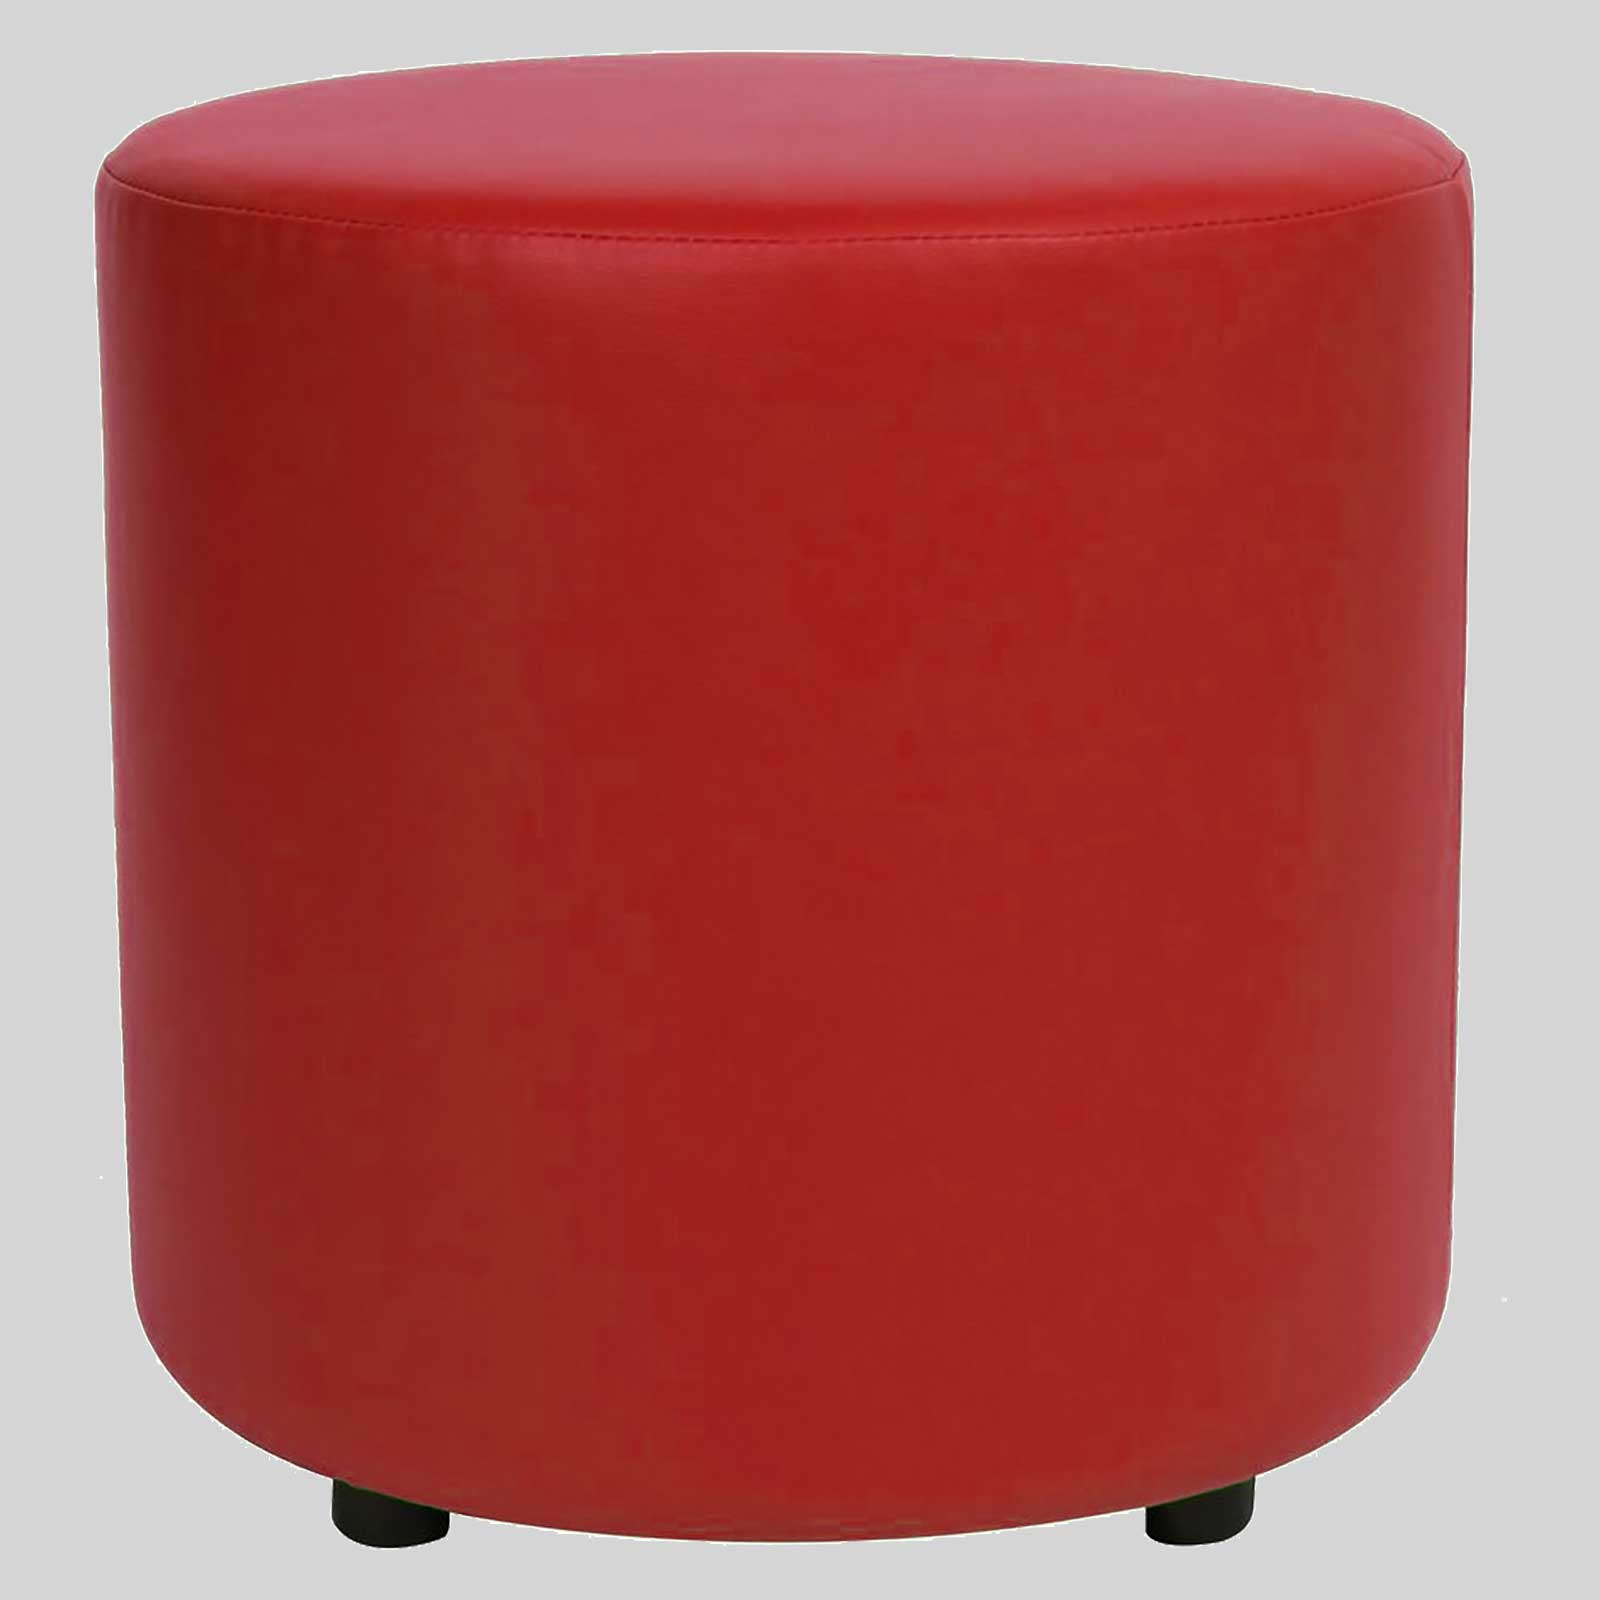 commercial quality round ottoman  concept collections - ottoman round  red